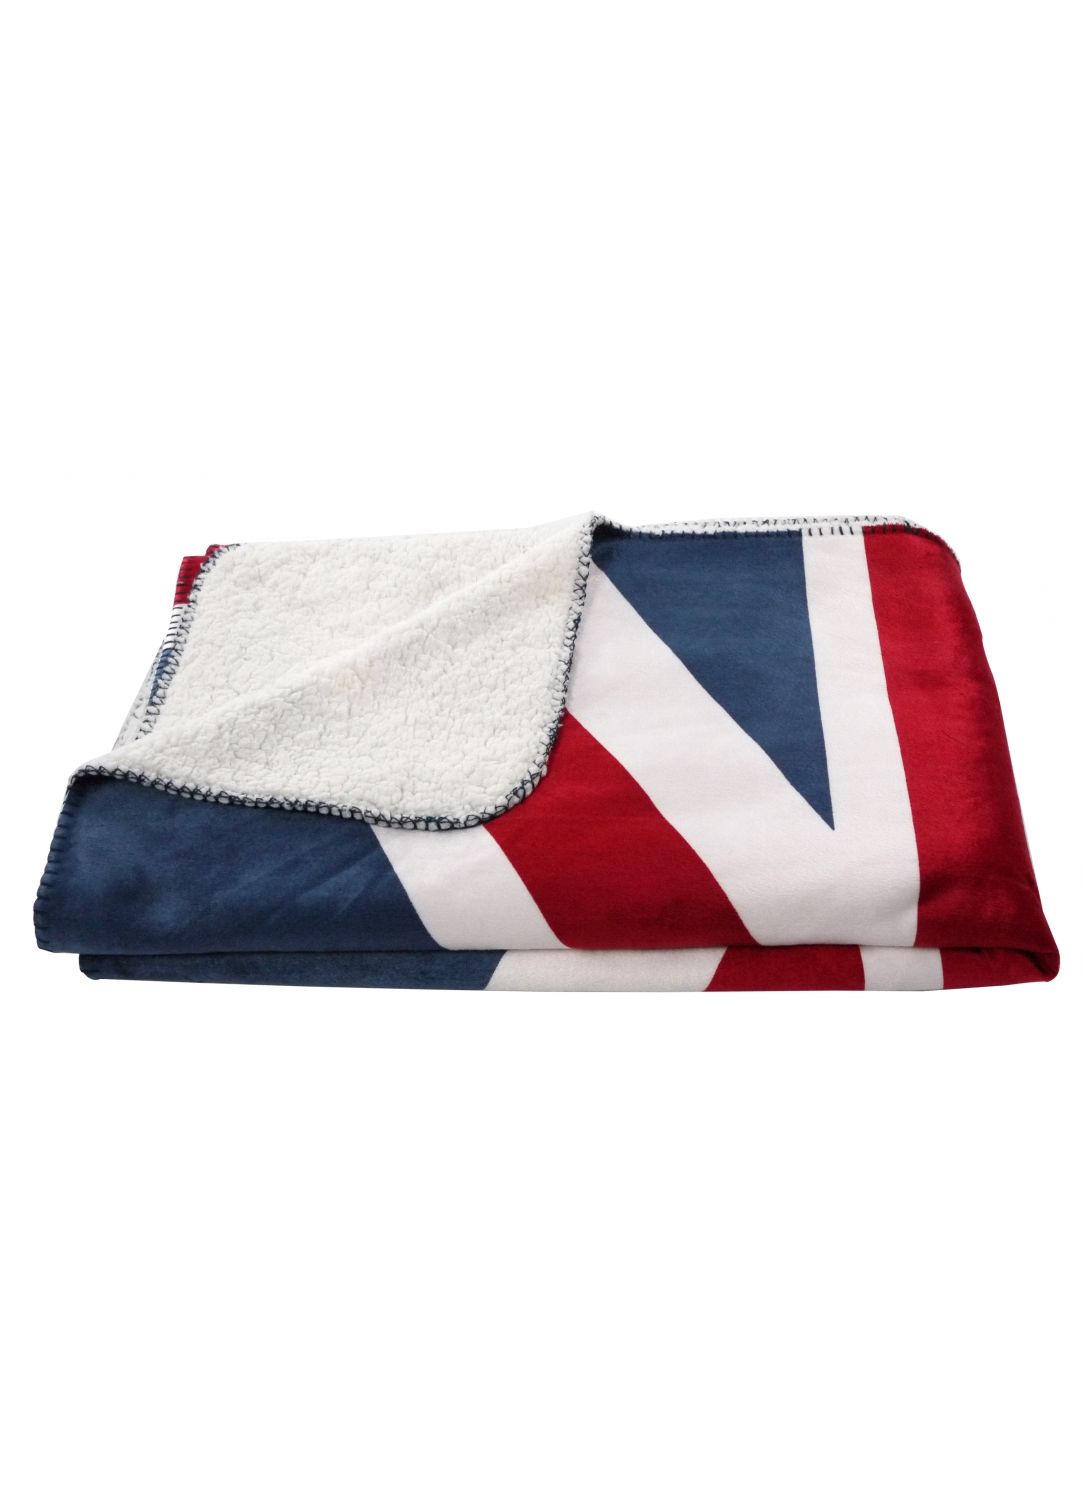 plaid union jack toucher polaire rouge blanc et bleu homemaison vente en ligne couvertures. Black Bedroom Furniture Sets. Home Design Ideas